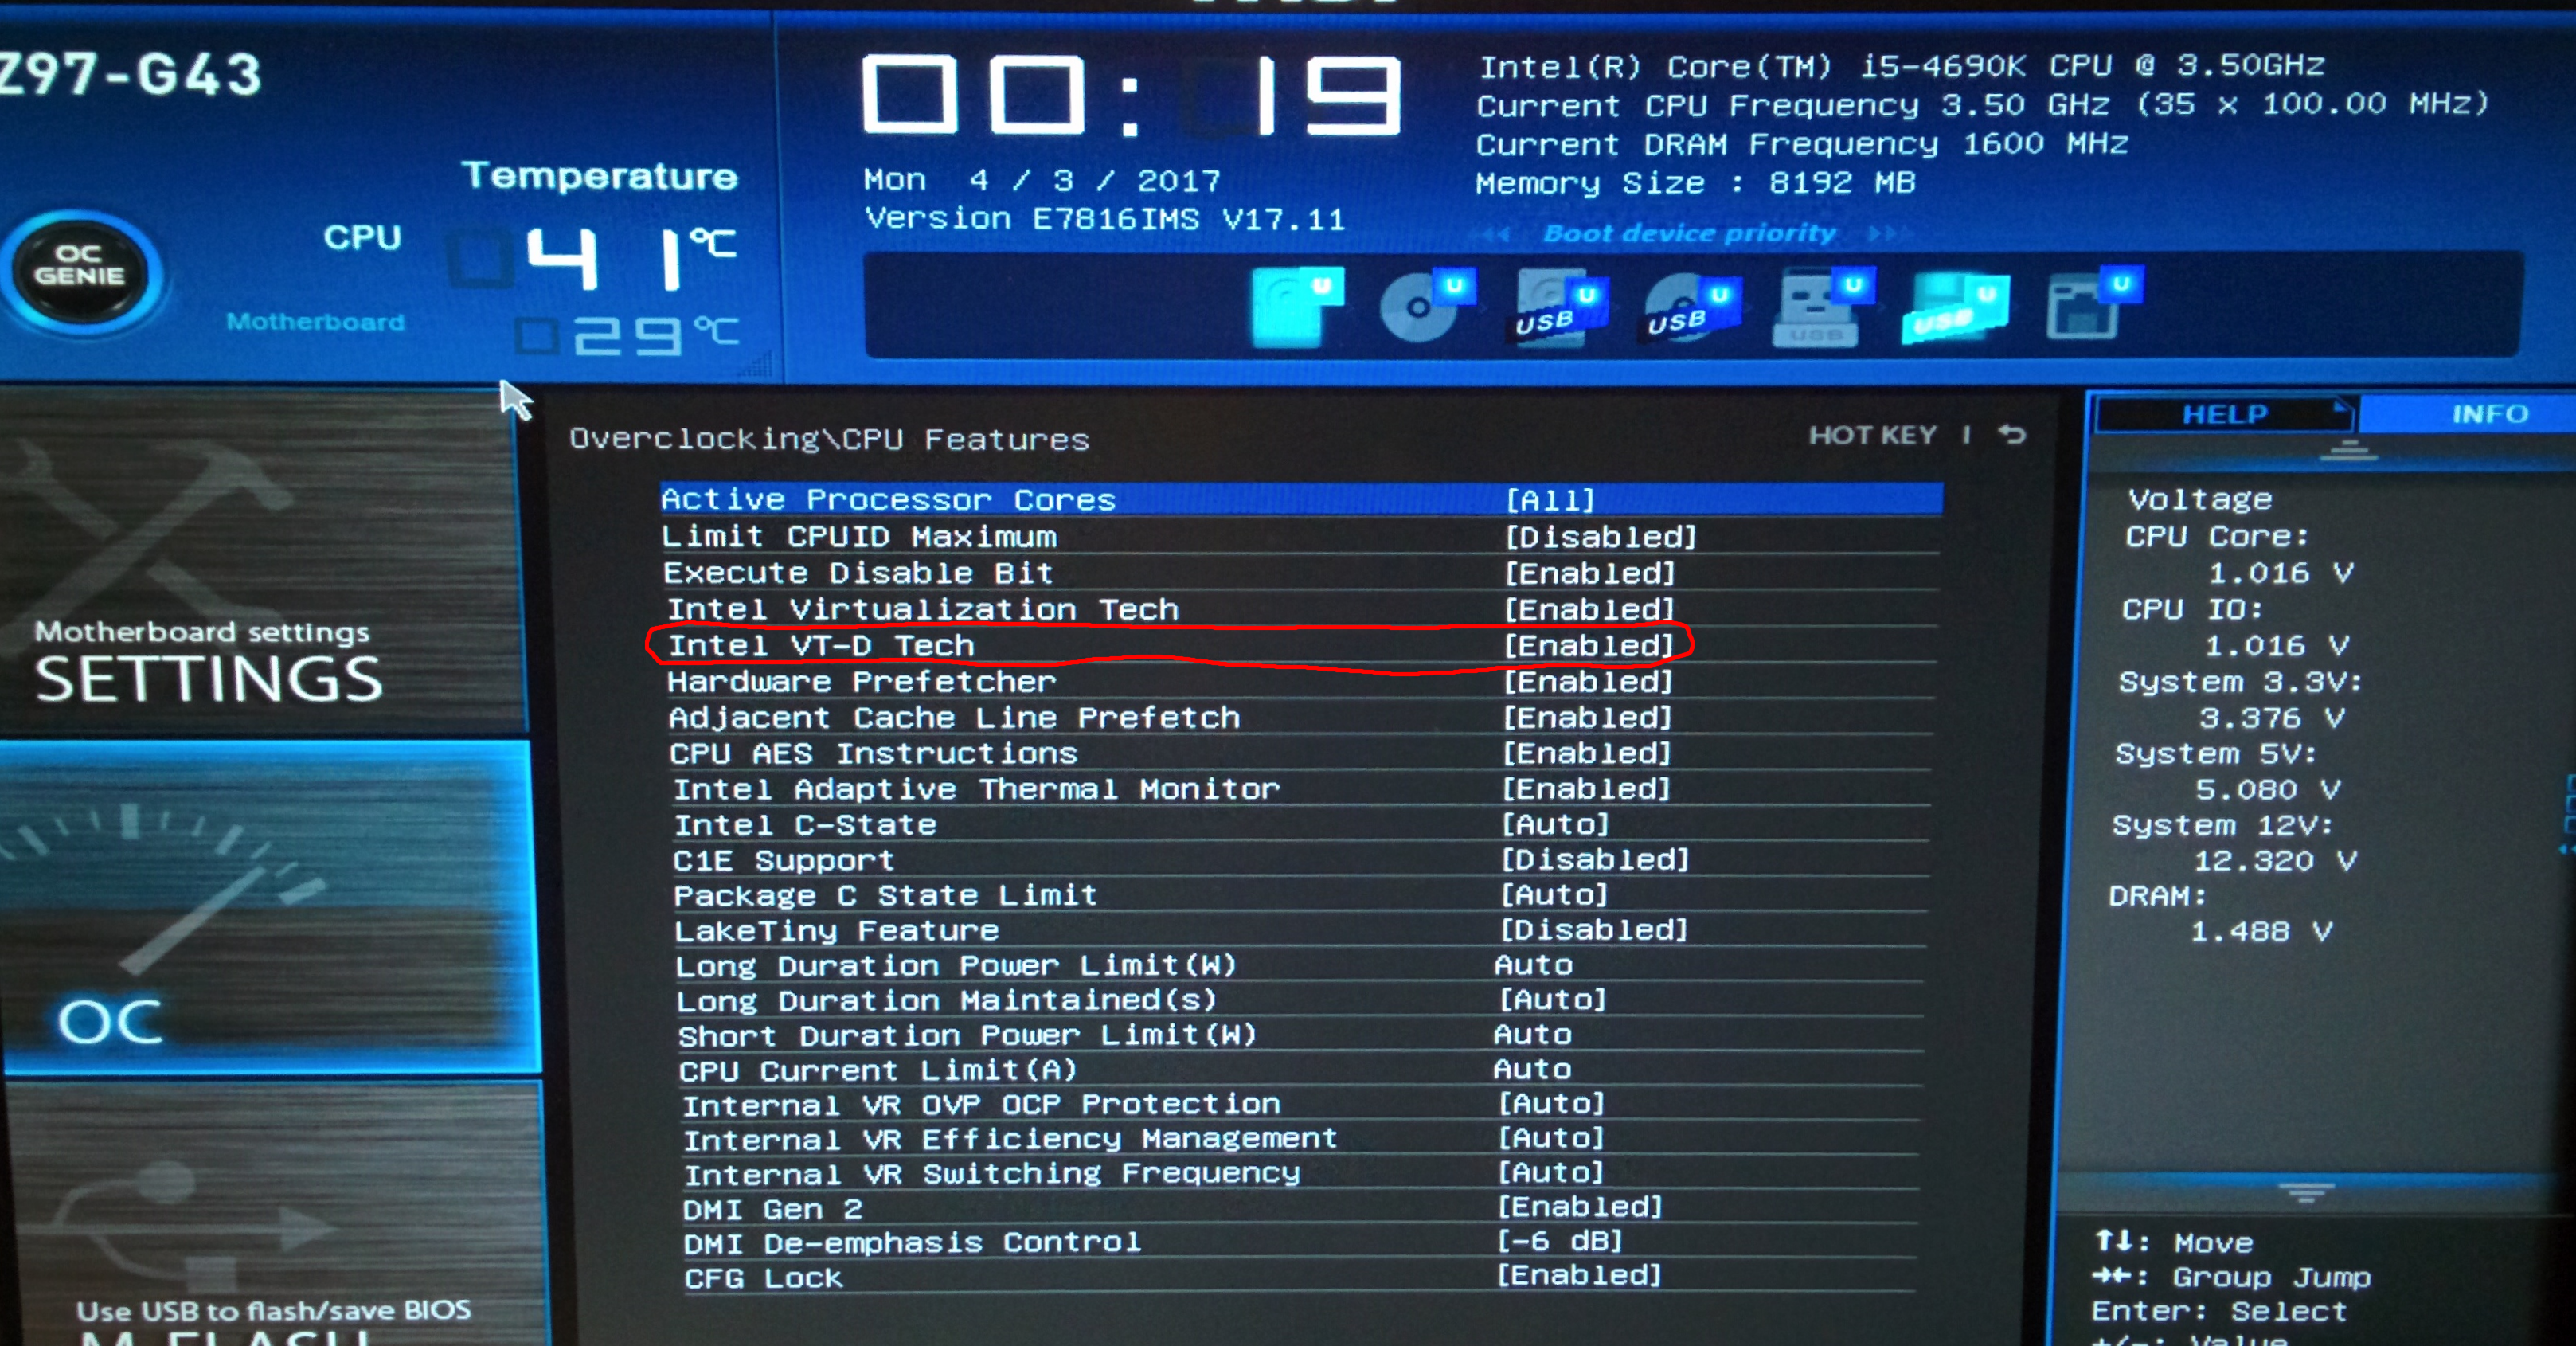 Does this mean that my motherboard has VT-D (IOMMU) support